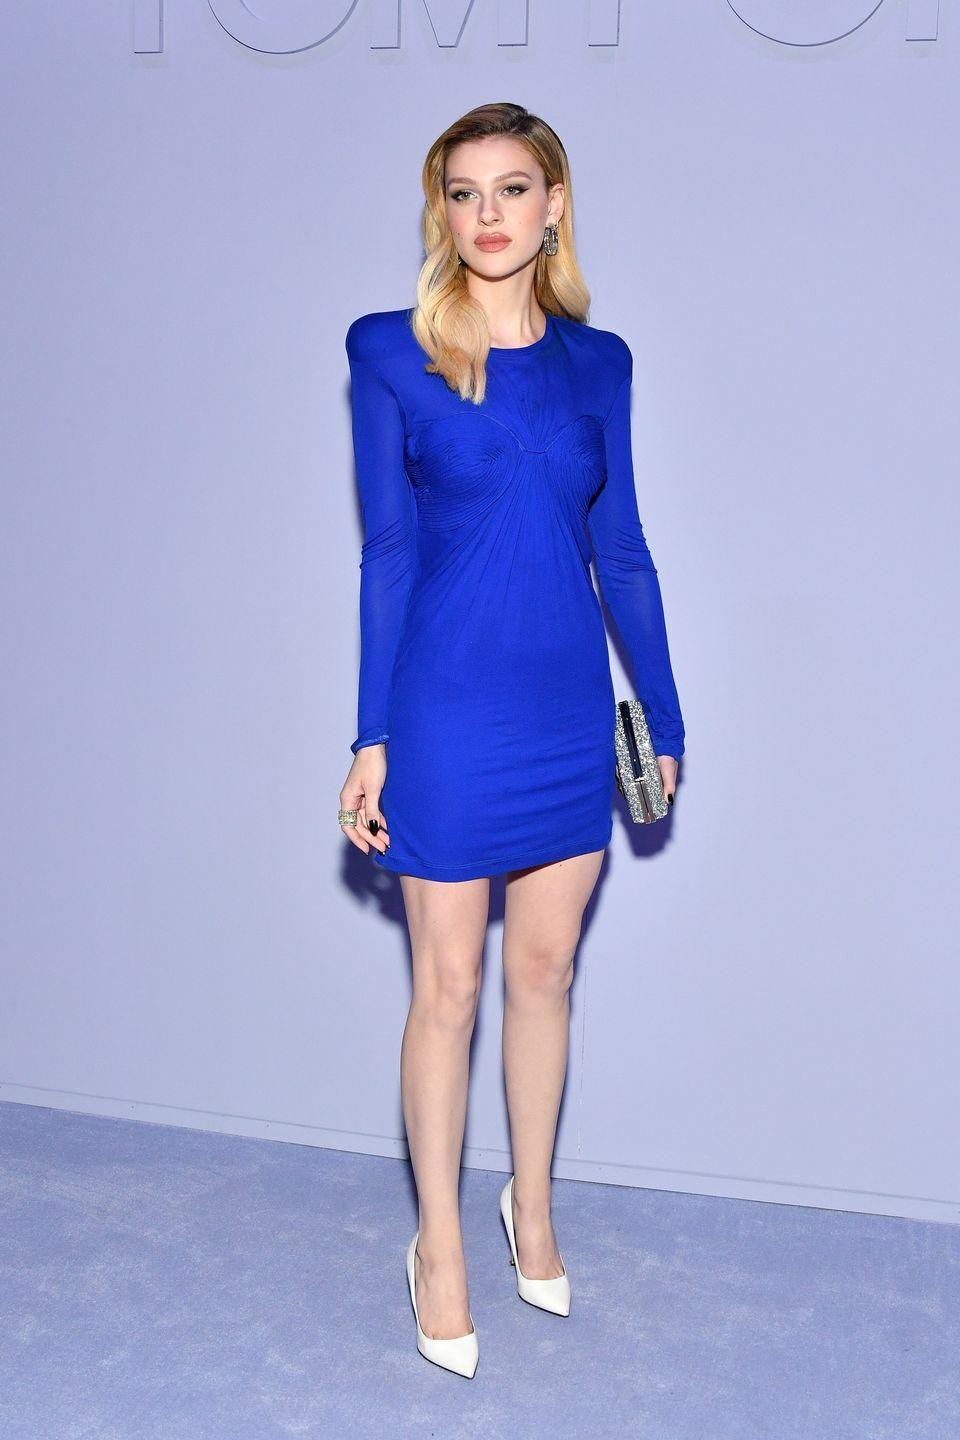 <p>The star dazzled in an electric blue peacock blue Tom Ford mini dress with shoulder pad detailing, styled with a pair of white stilettos. <br></p>